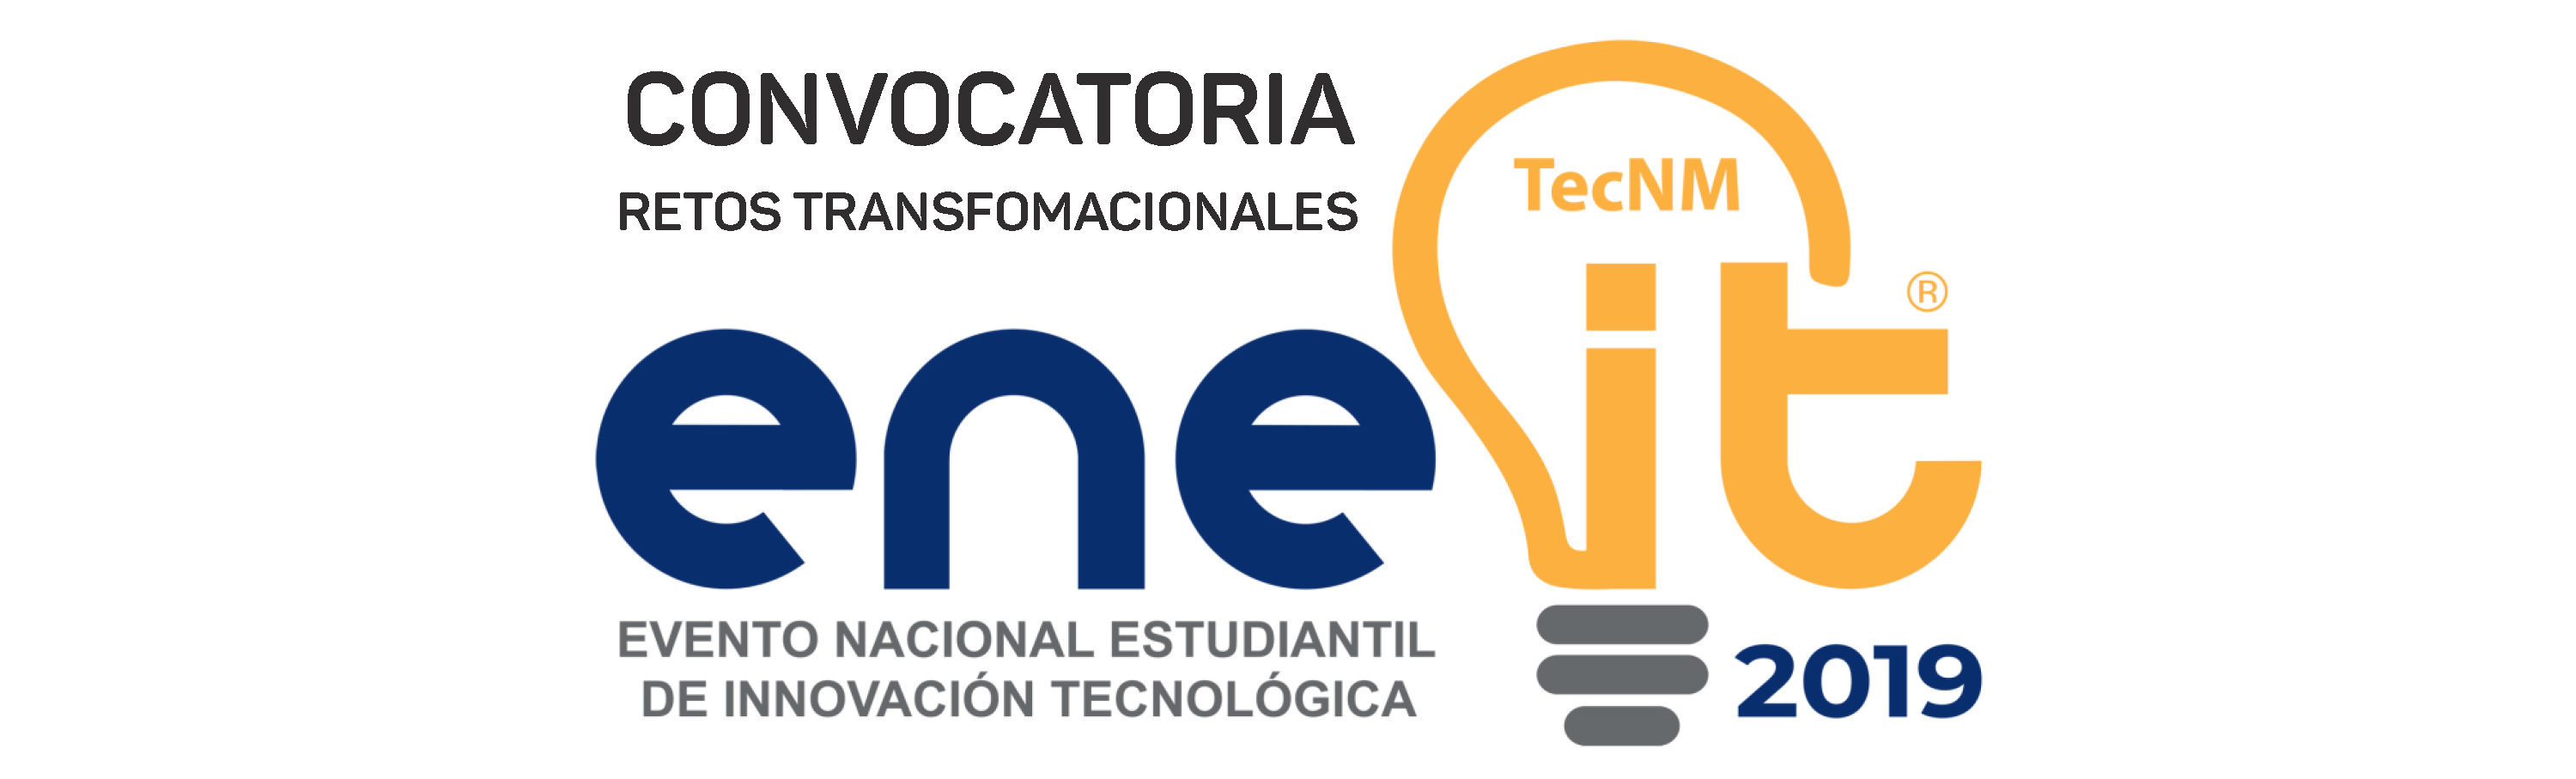 Convocatoria Retos Transformacionales 2019